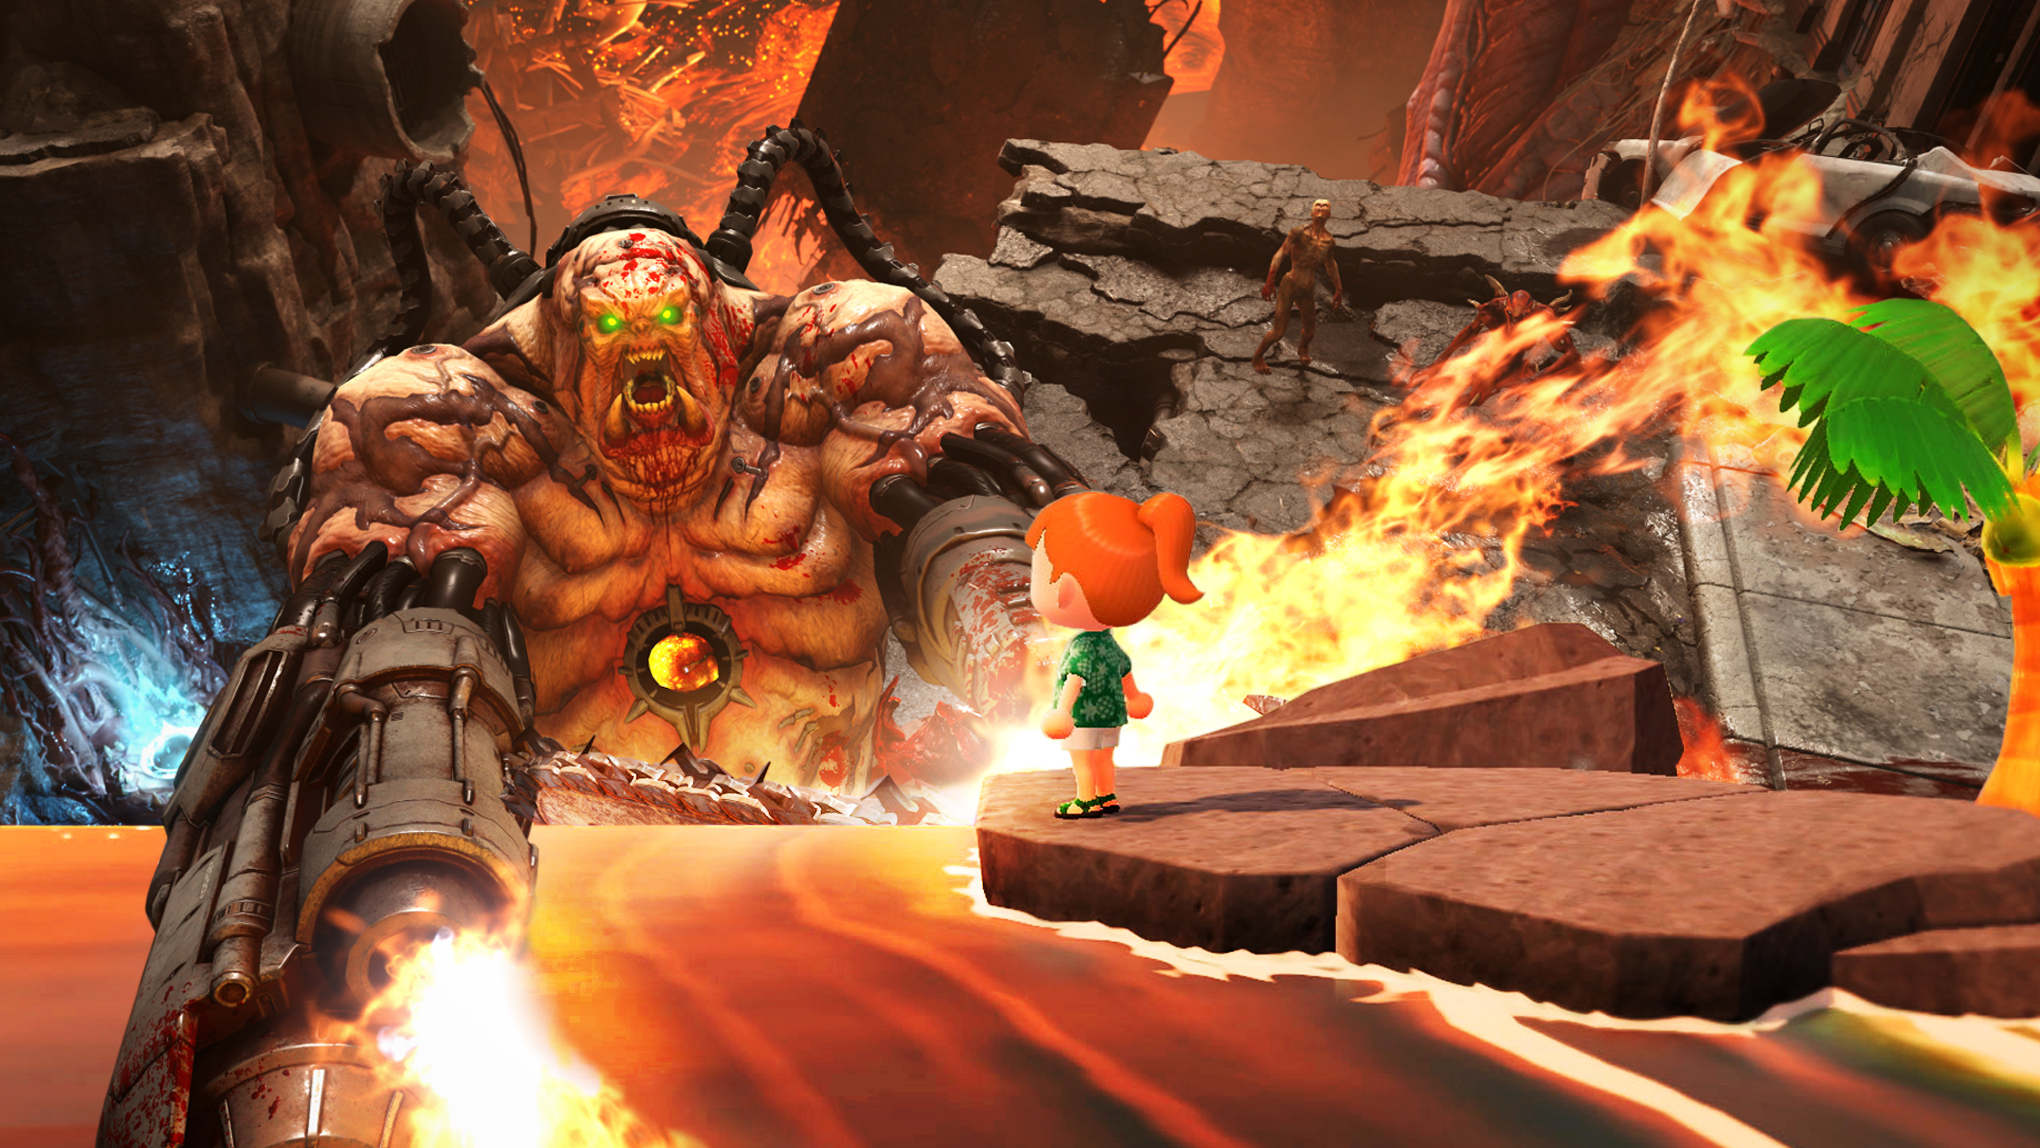 Doom creature rains down fire on a character from Animal Crossing